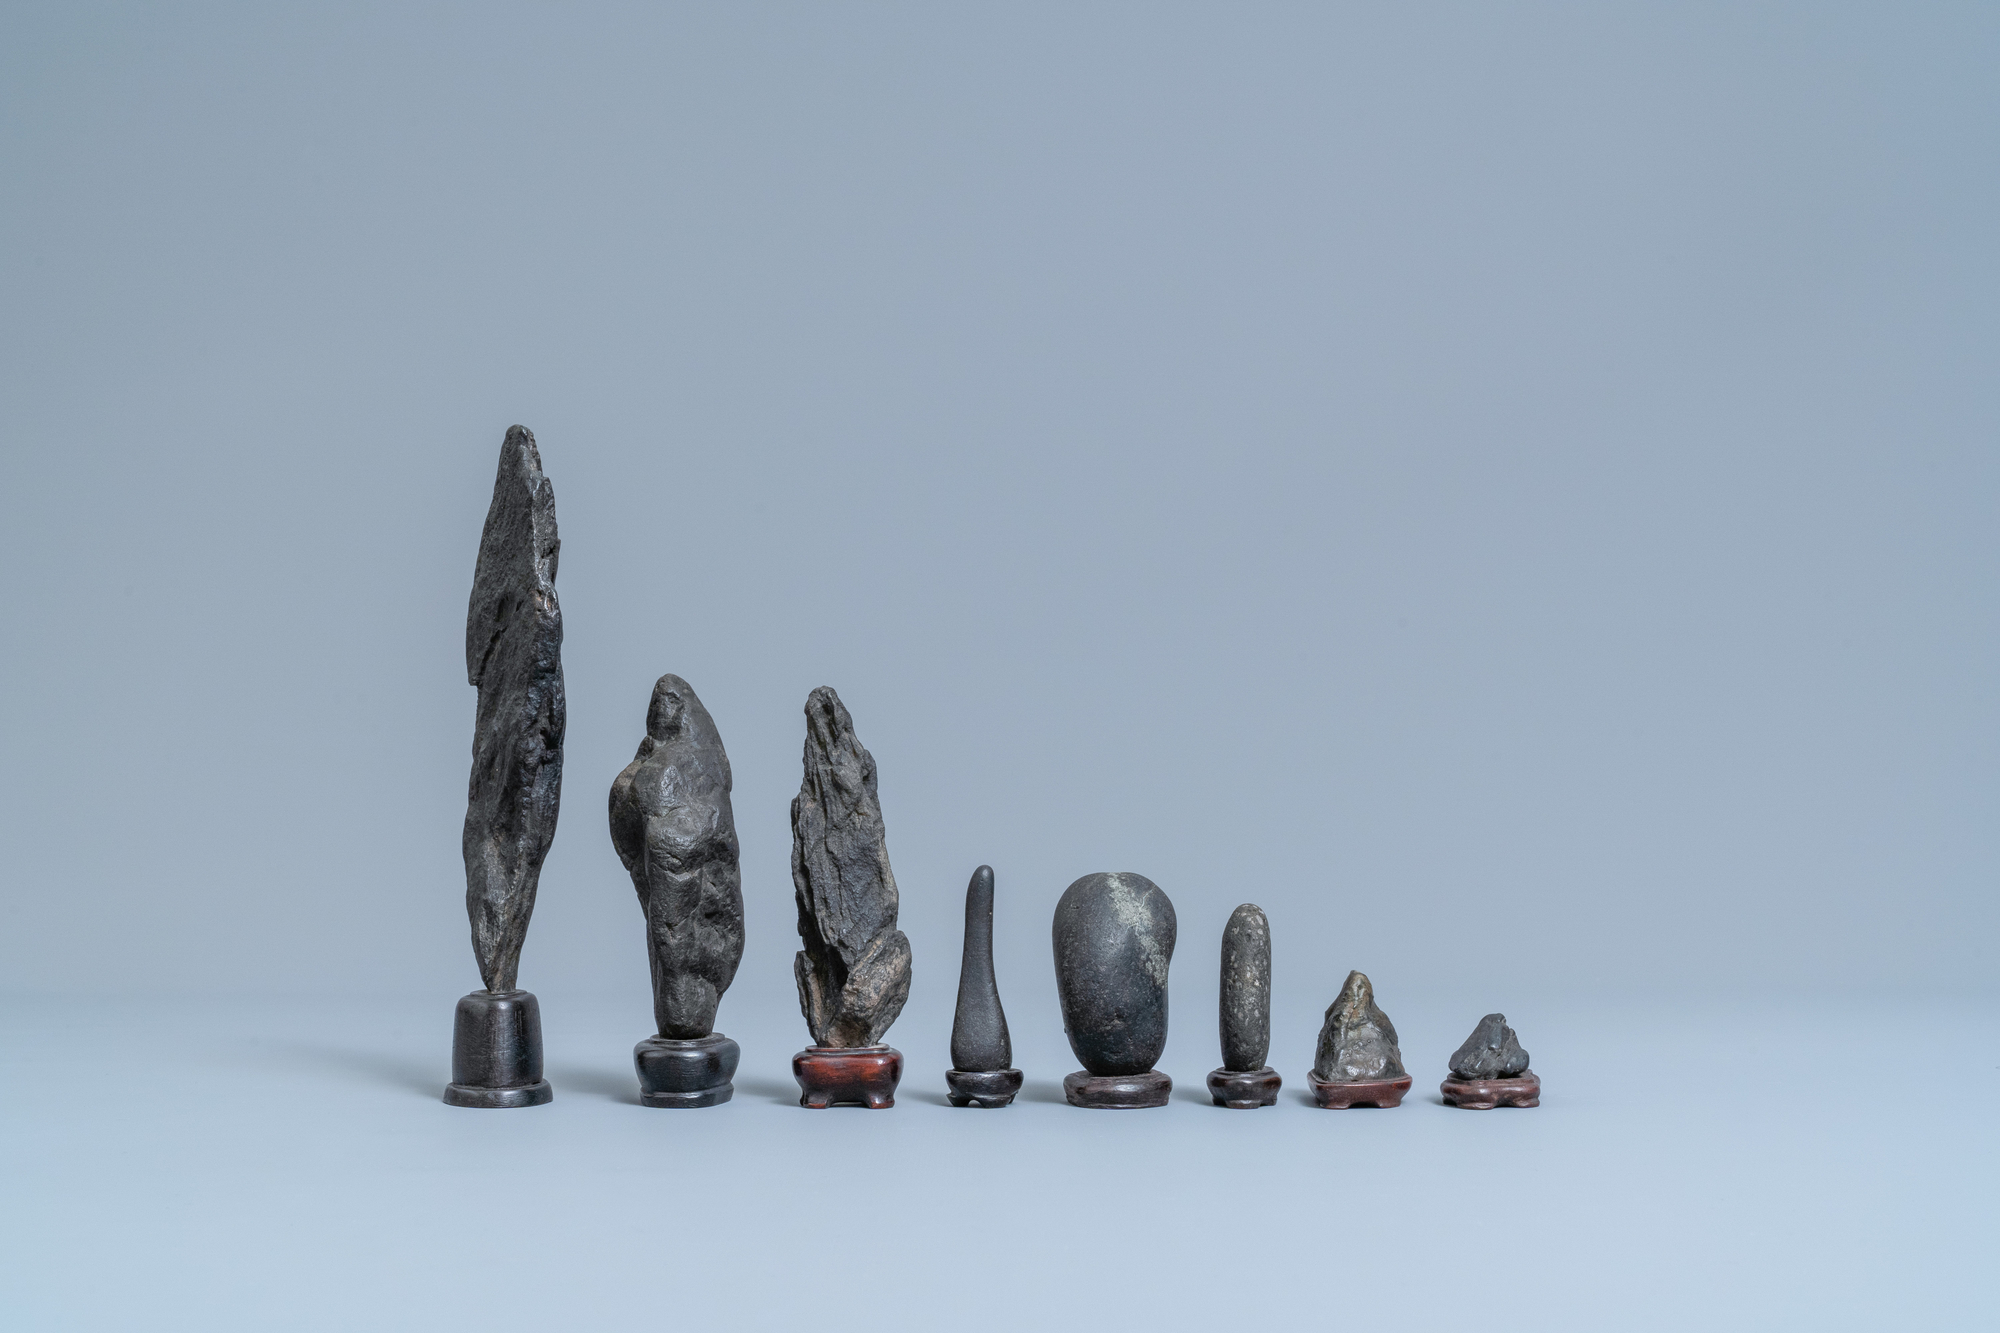 Eight Chinese scholar's rocks on wooden stands, 19/20th C. - Image 3 of 7